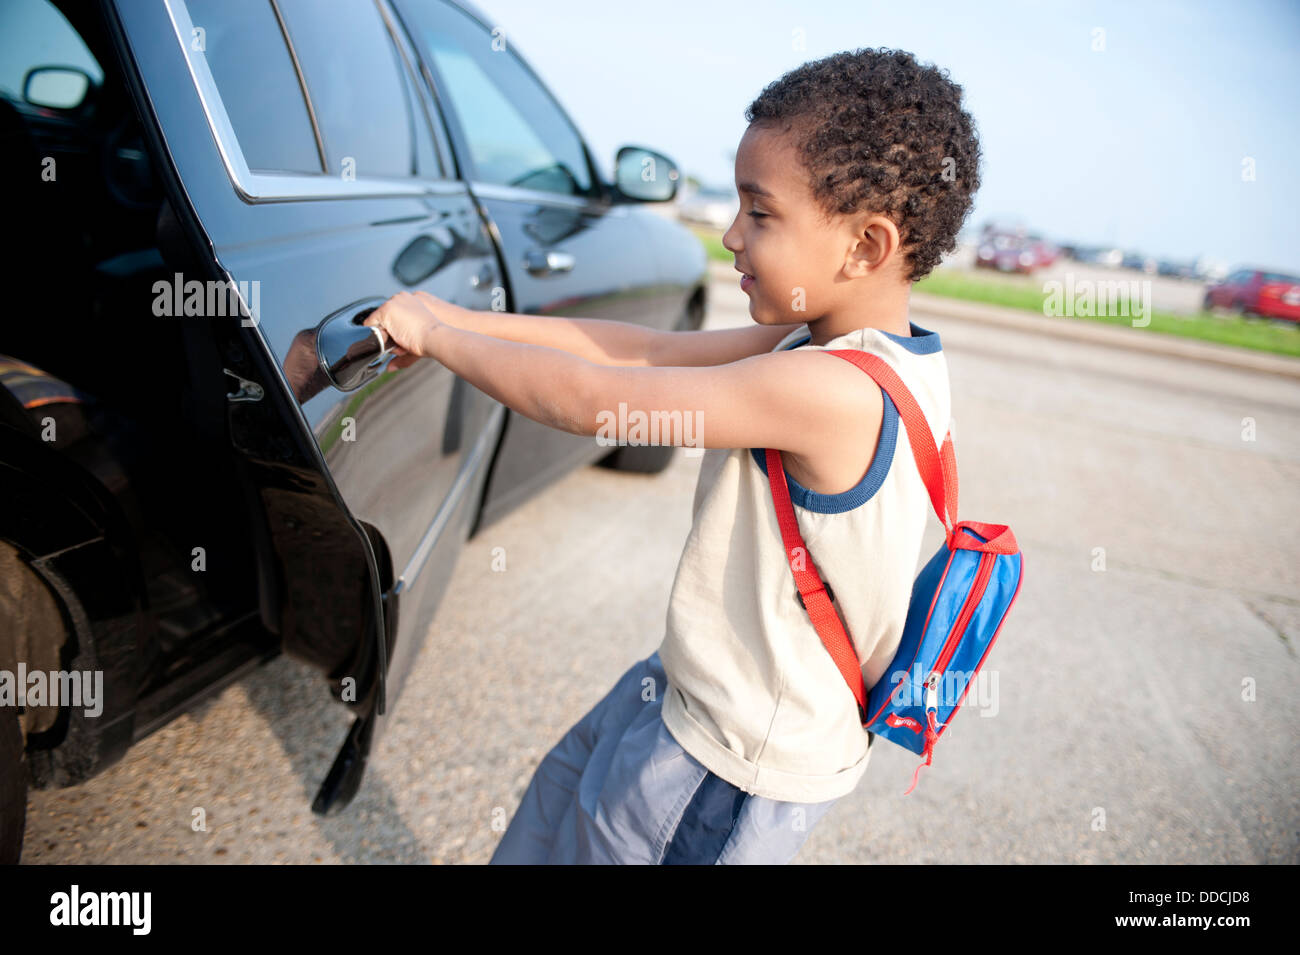 A young boy playing, pulling a car door open Stock Photo, Royalty ...